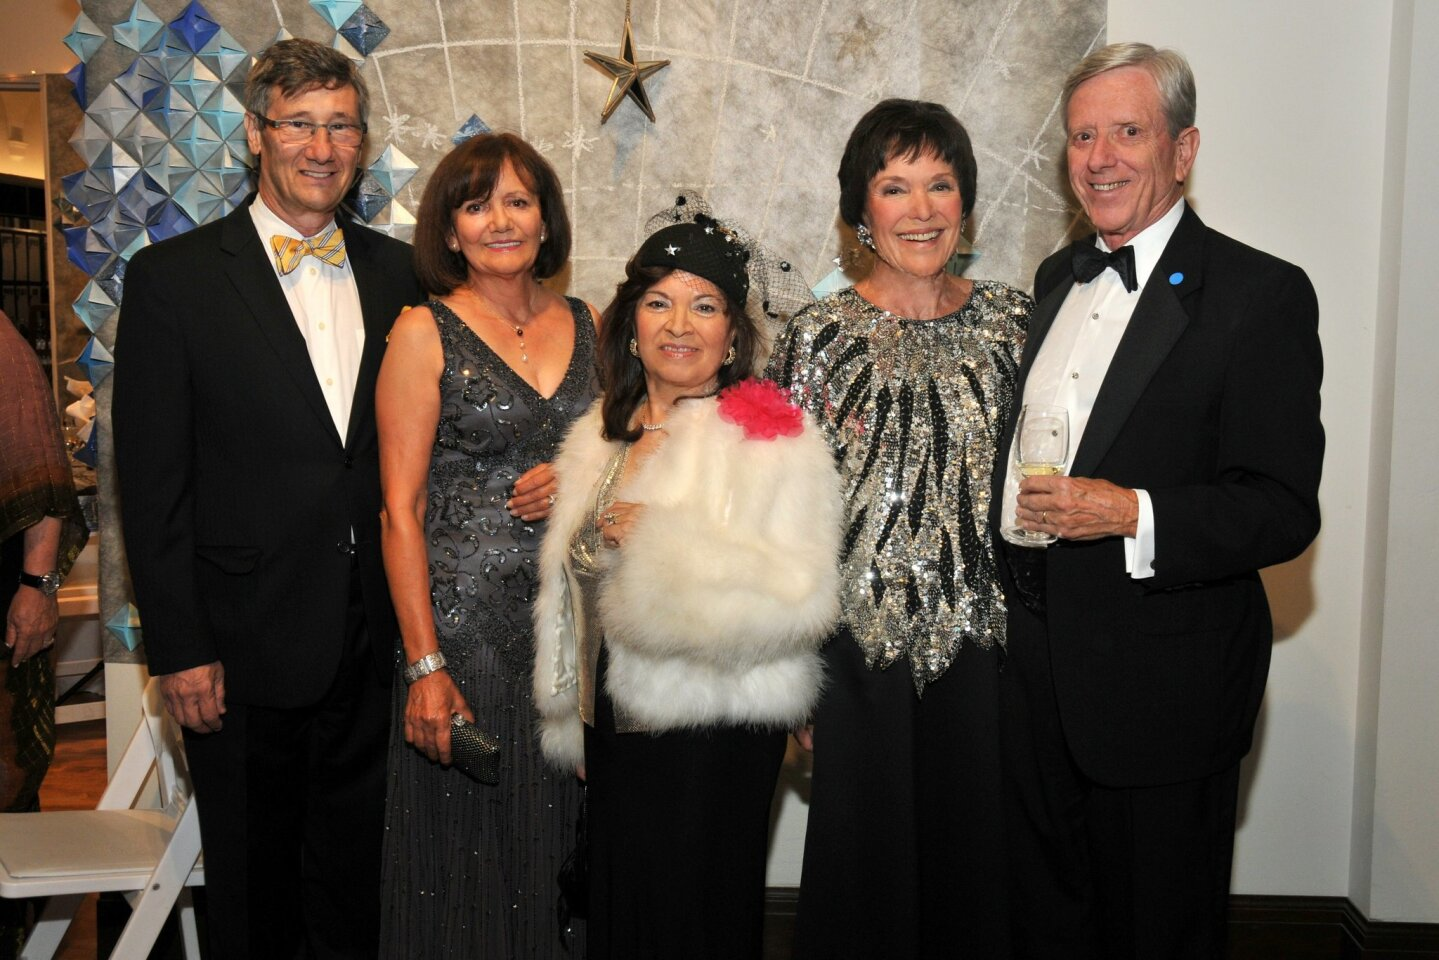 Philippe and Maria Prokocimer (gala chair) with co-chair Alice Brana and (chair) Ginny Black and Bob Black